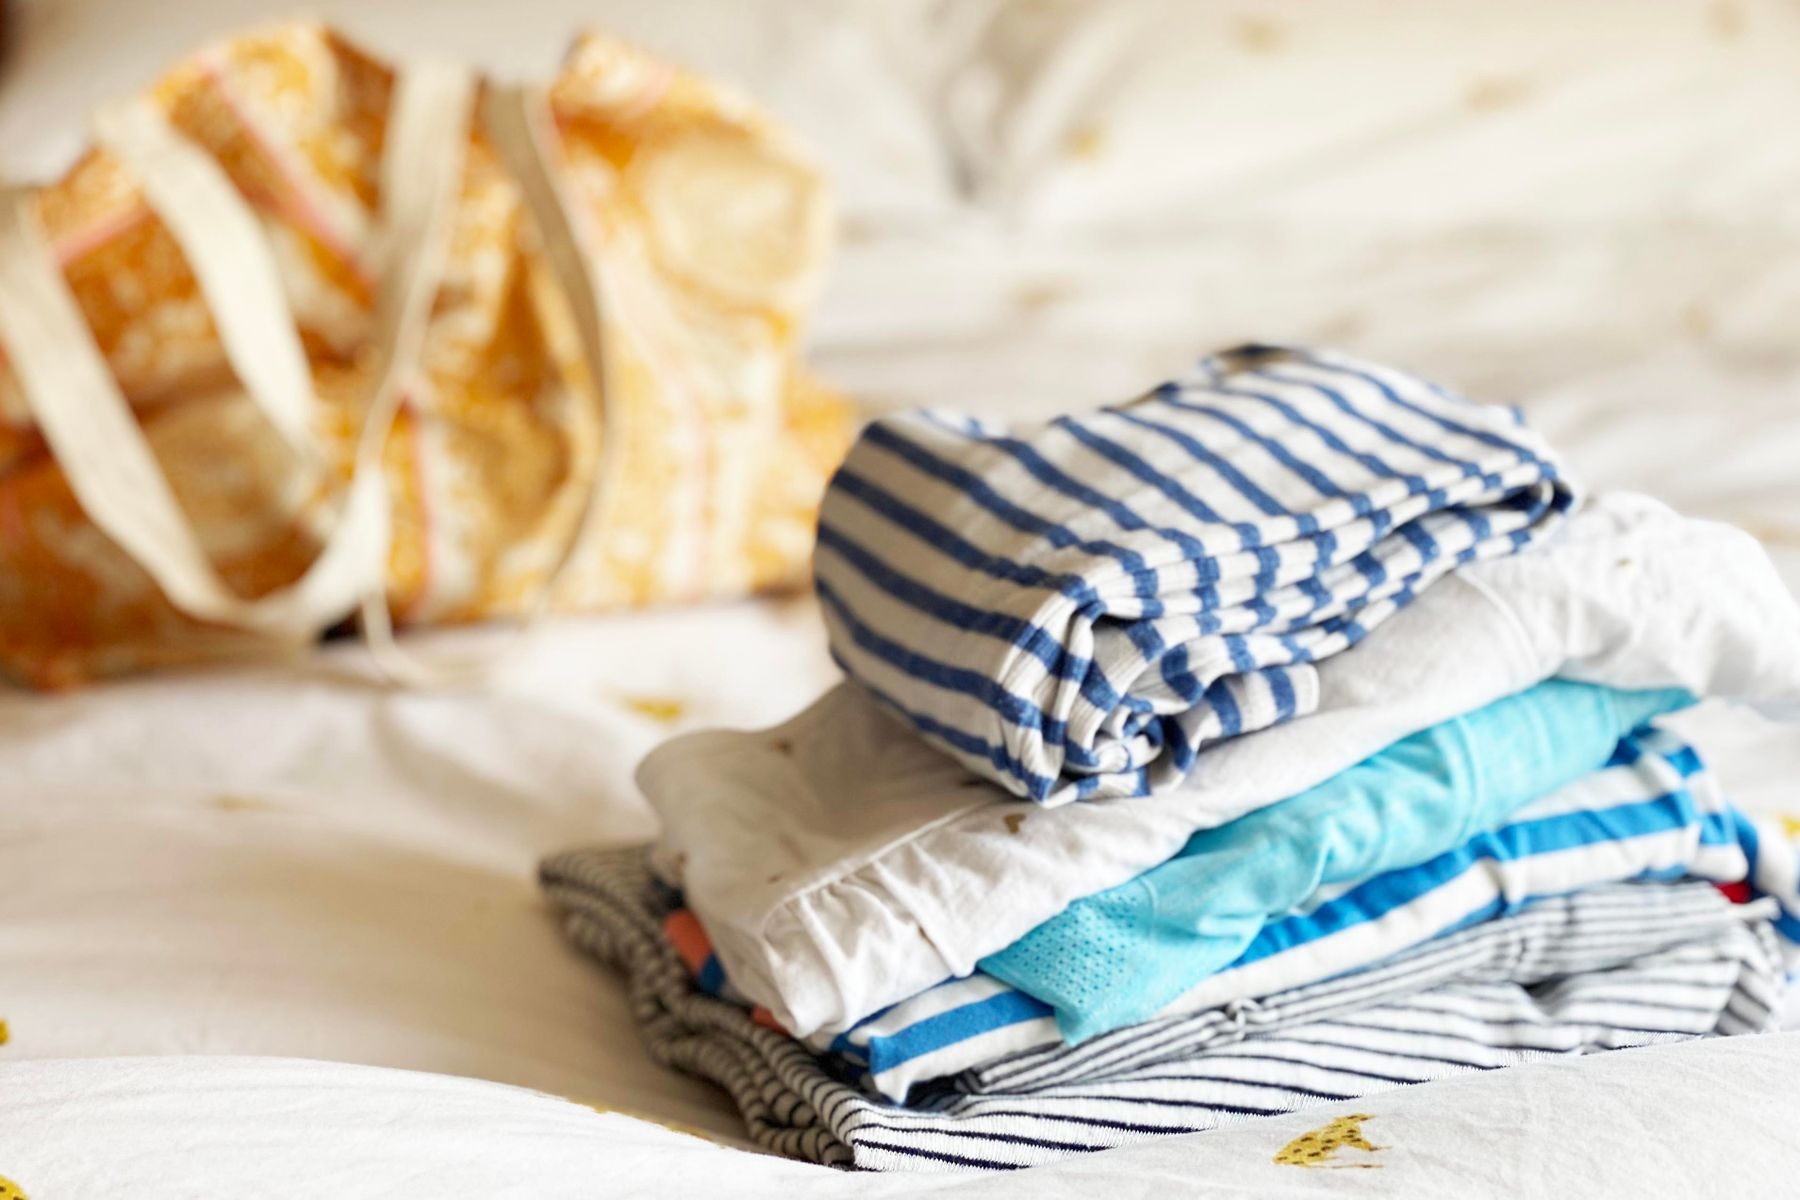 Assorted clothing folded on a bed, large fabric bag in the background